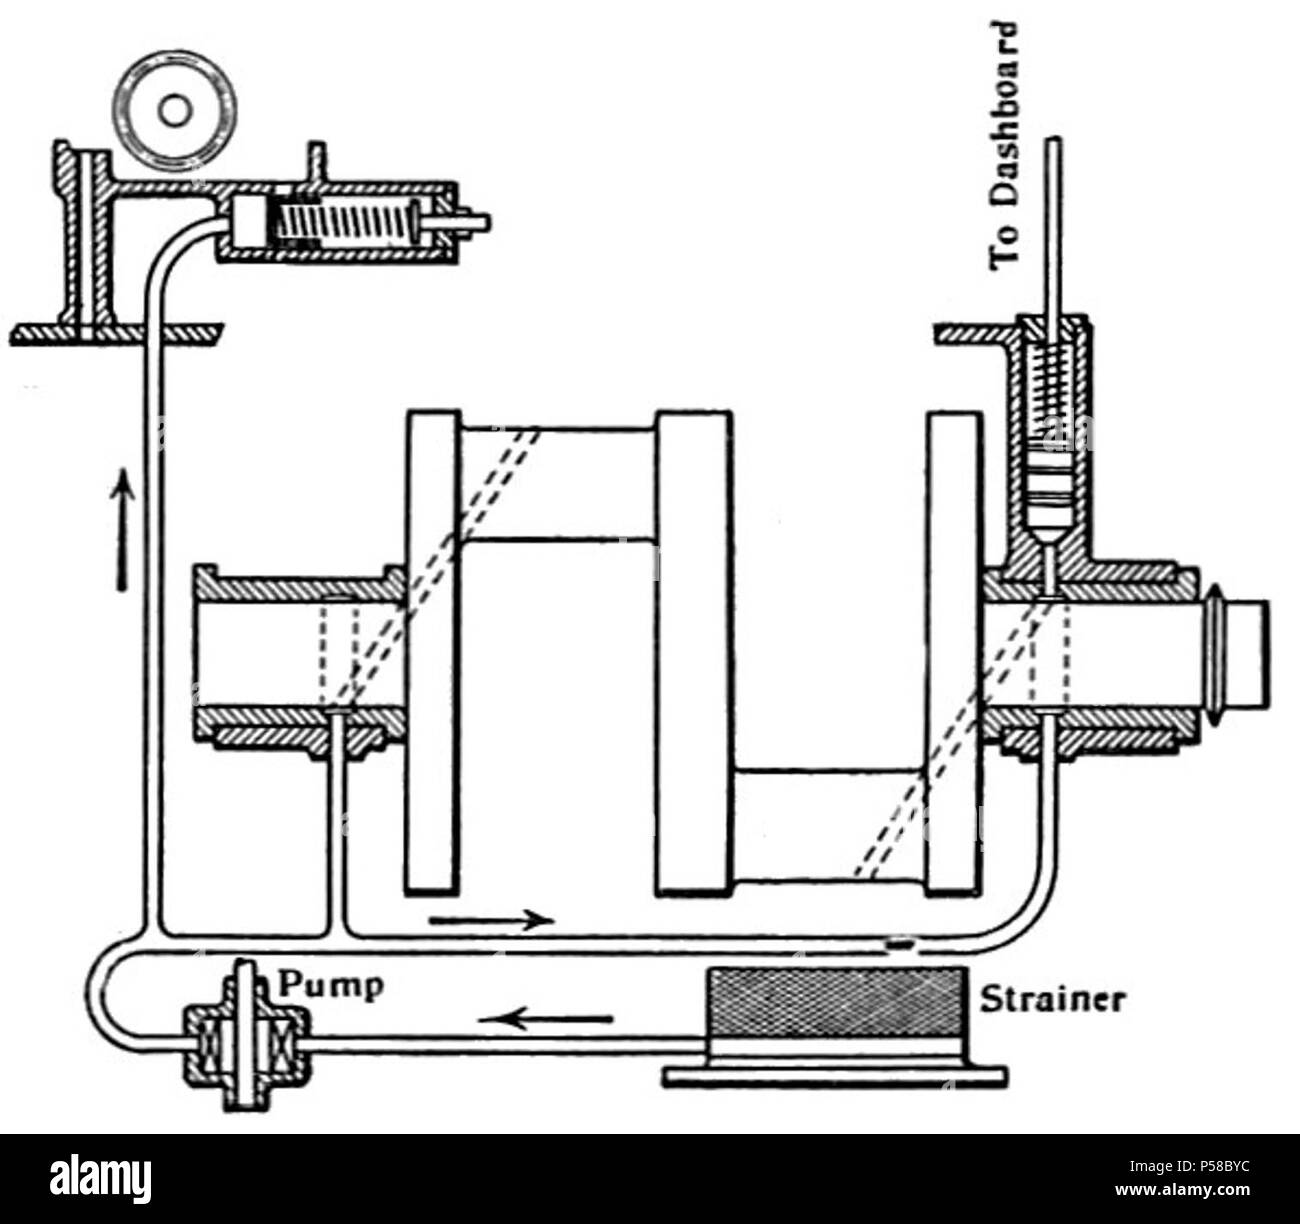 18 24hp enfield engine lubrication system diagram (heat engines 1913 ford diesel engine diagram 18 24hp enfield engine lubrication system diagram (heat engines 1913)